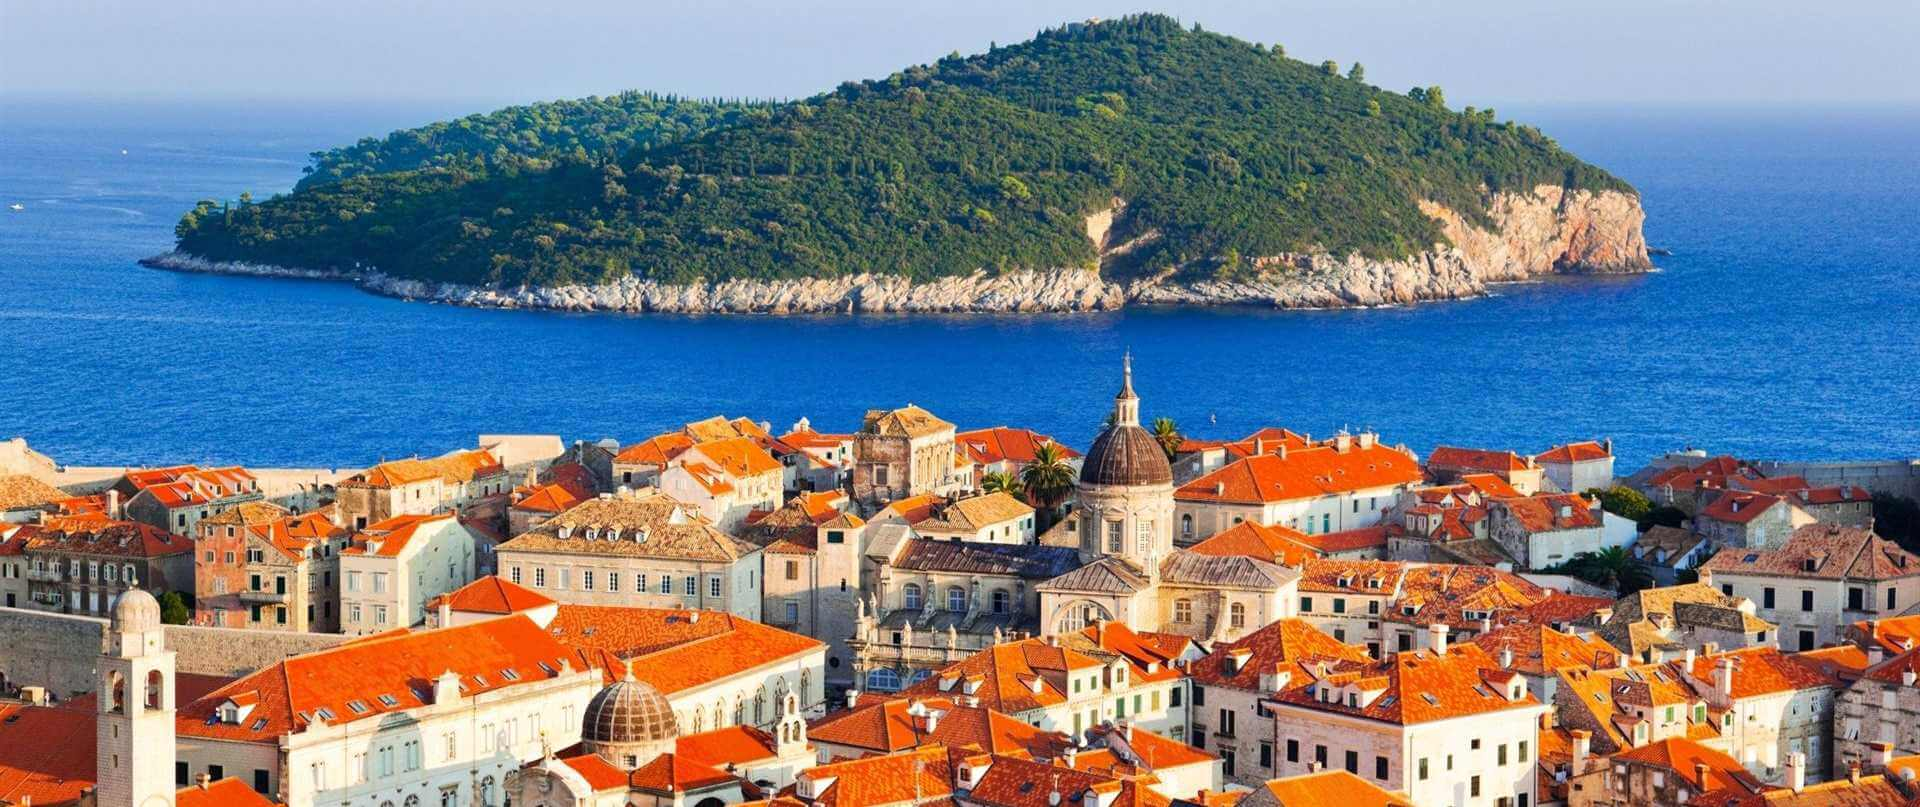 dubrovnik-sailing-route